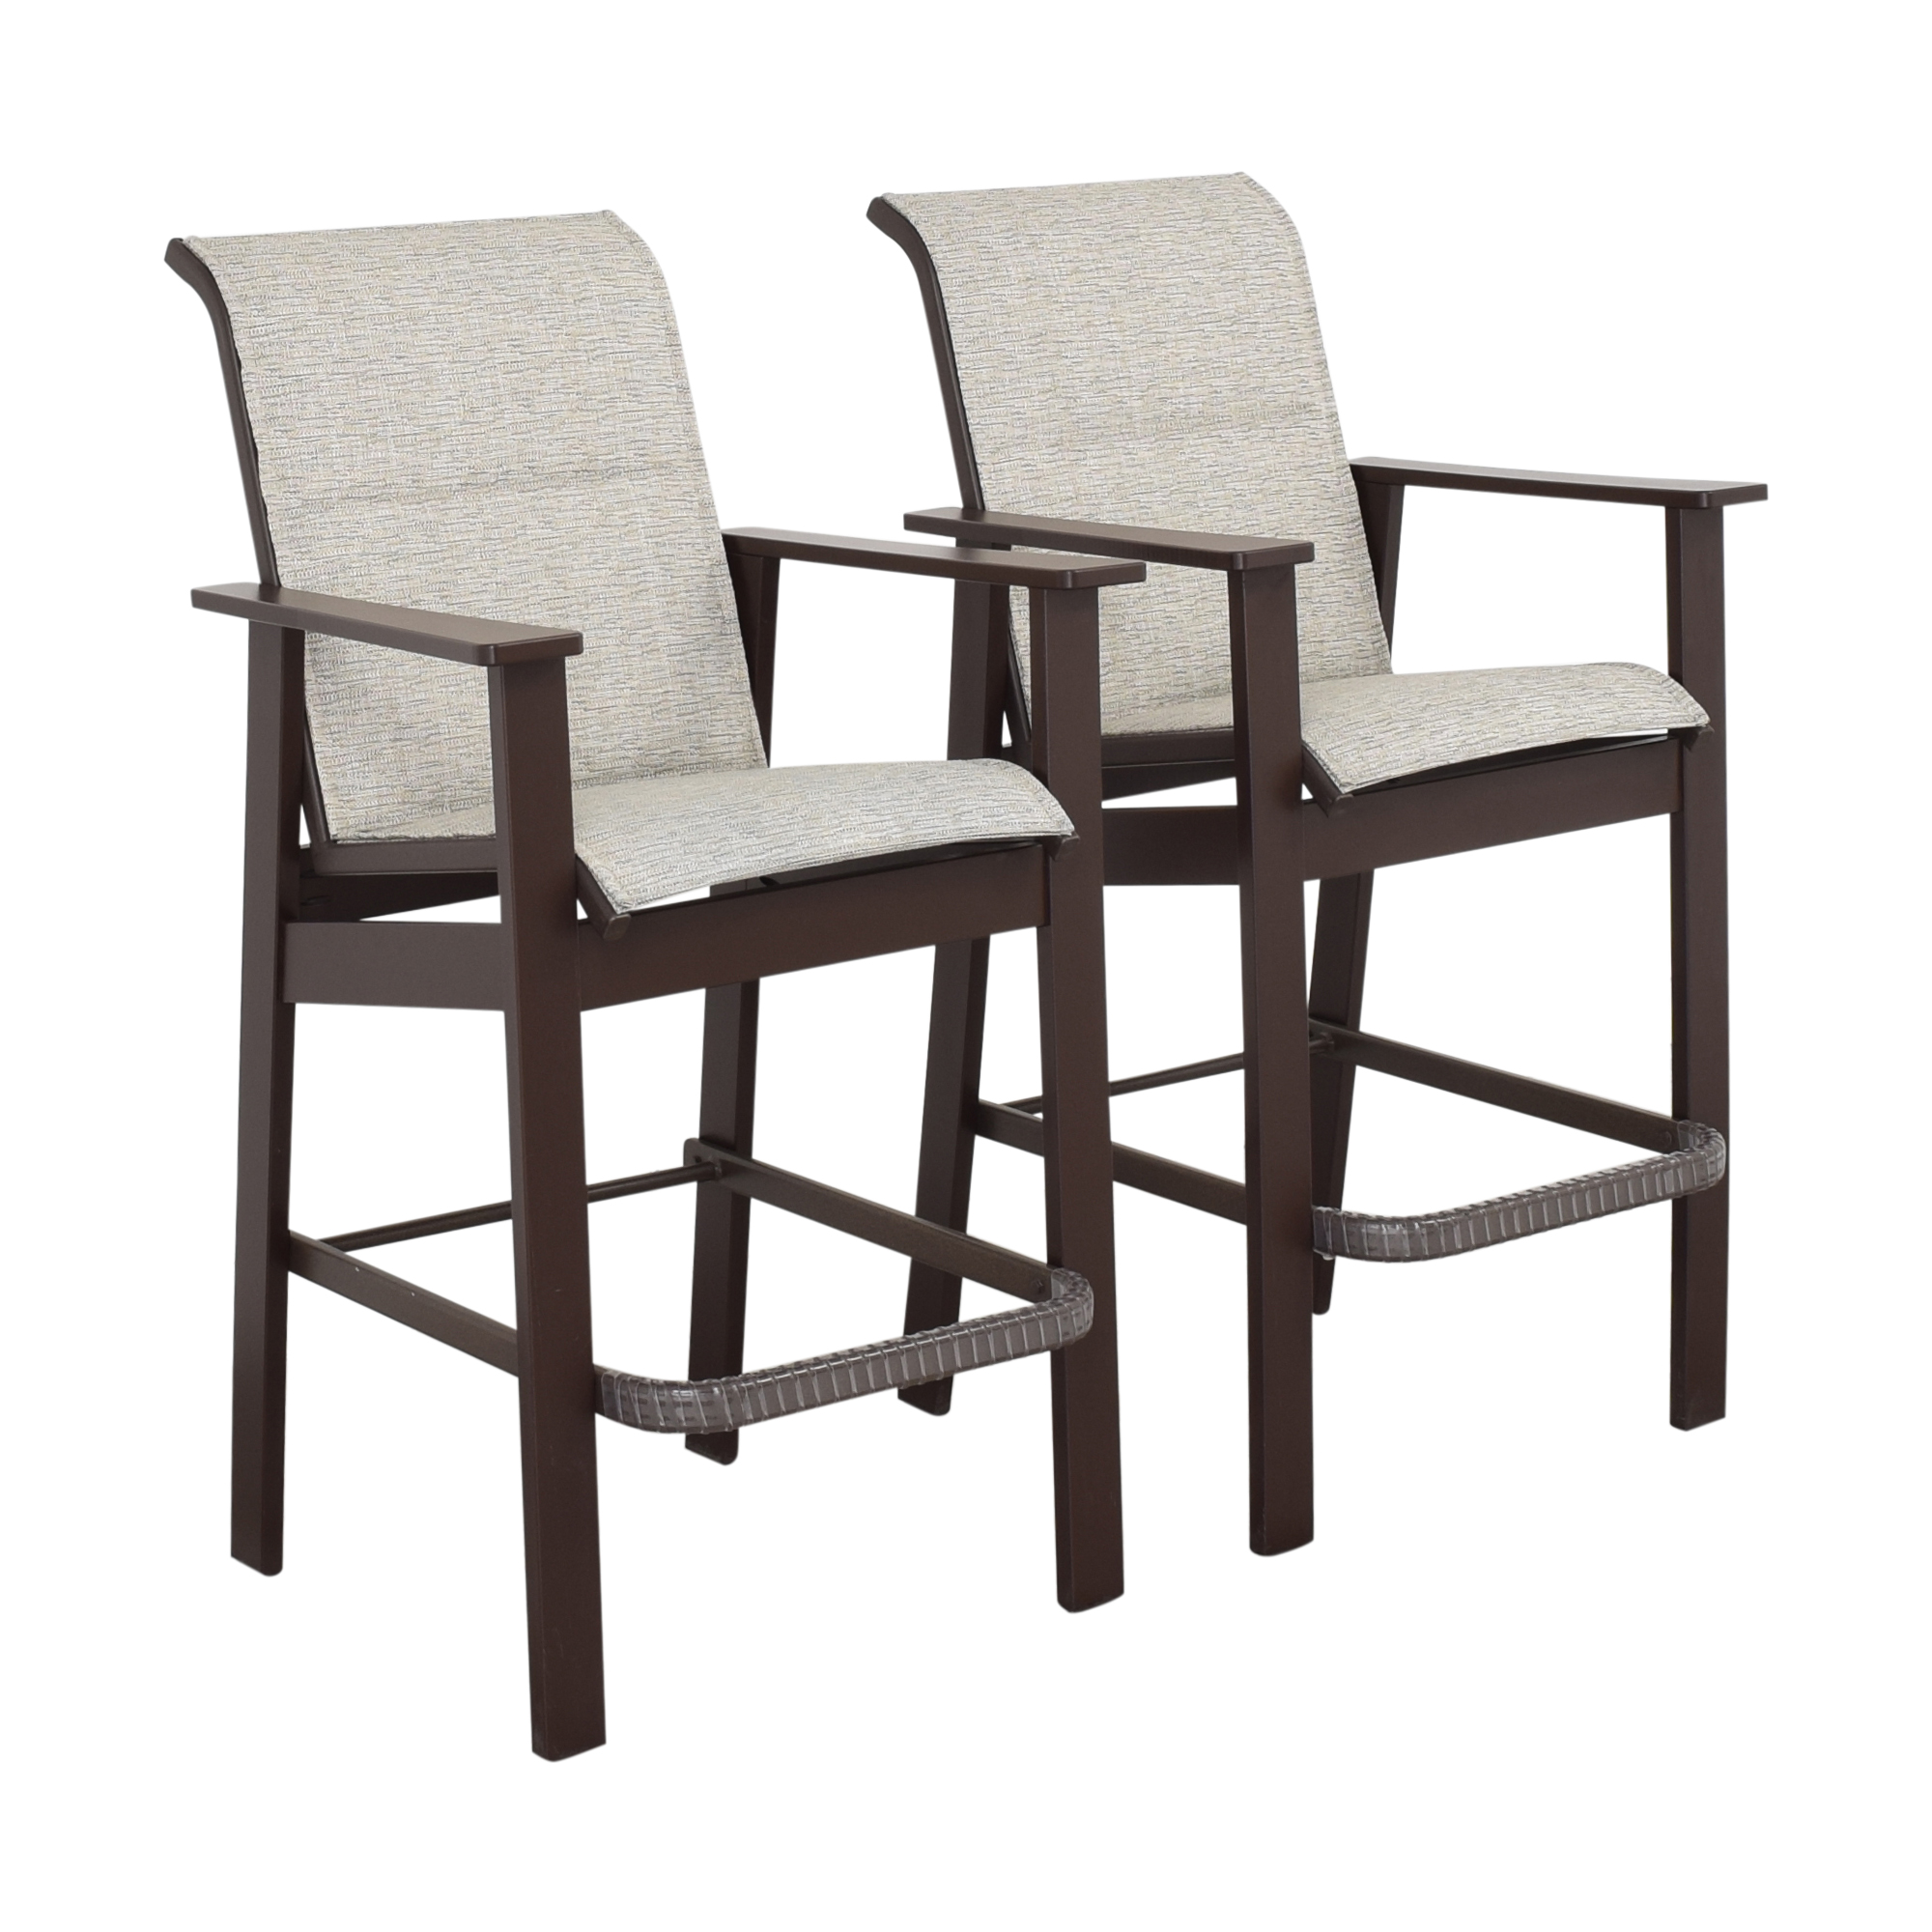 high dining chairs for sale